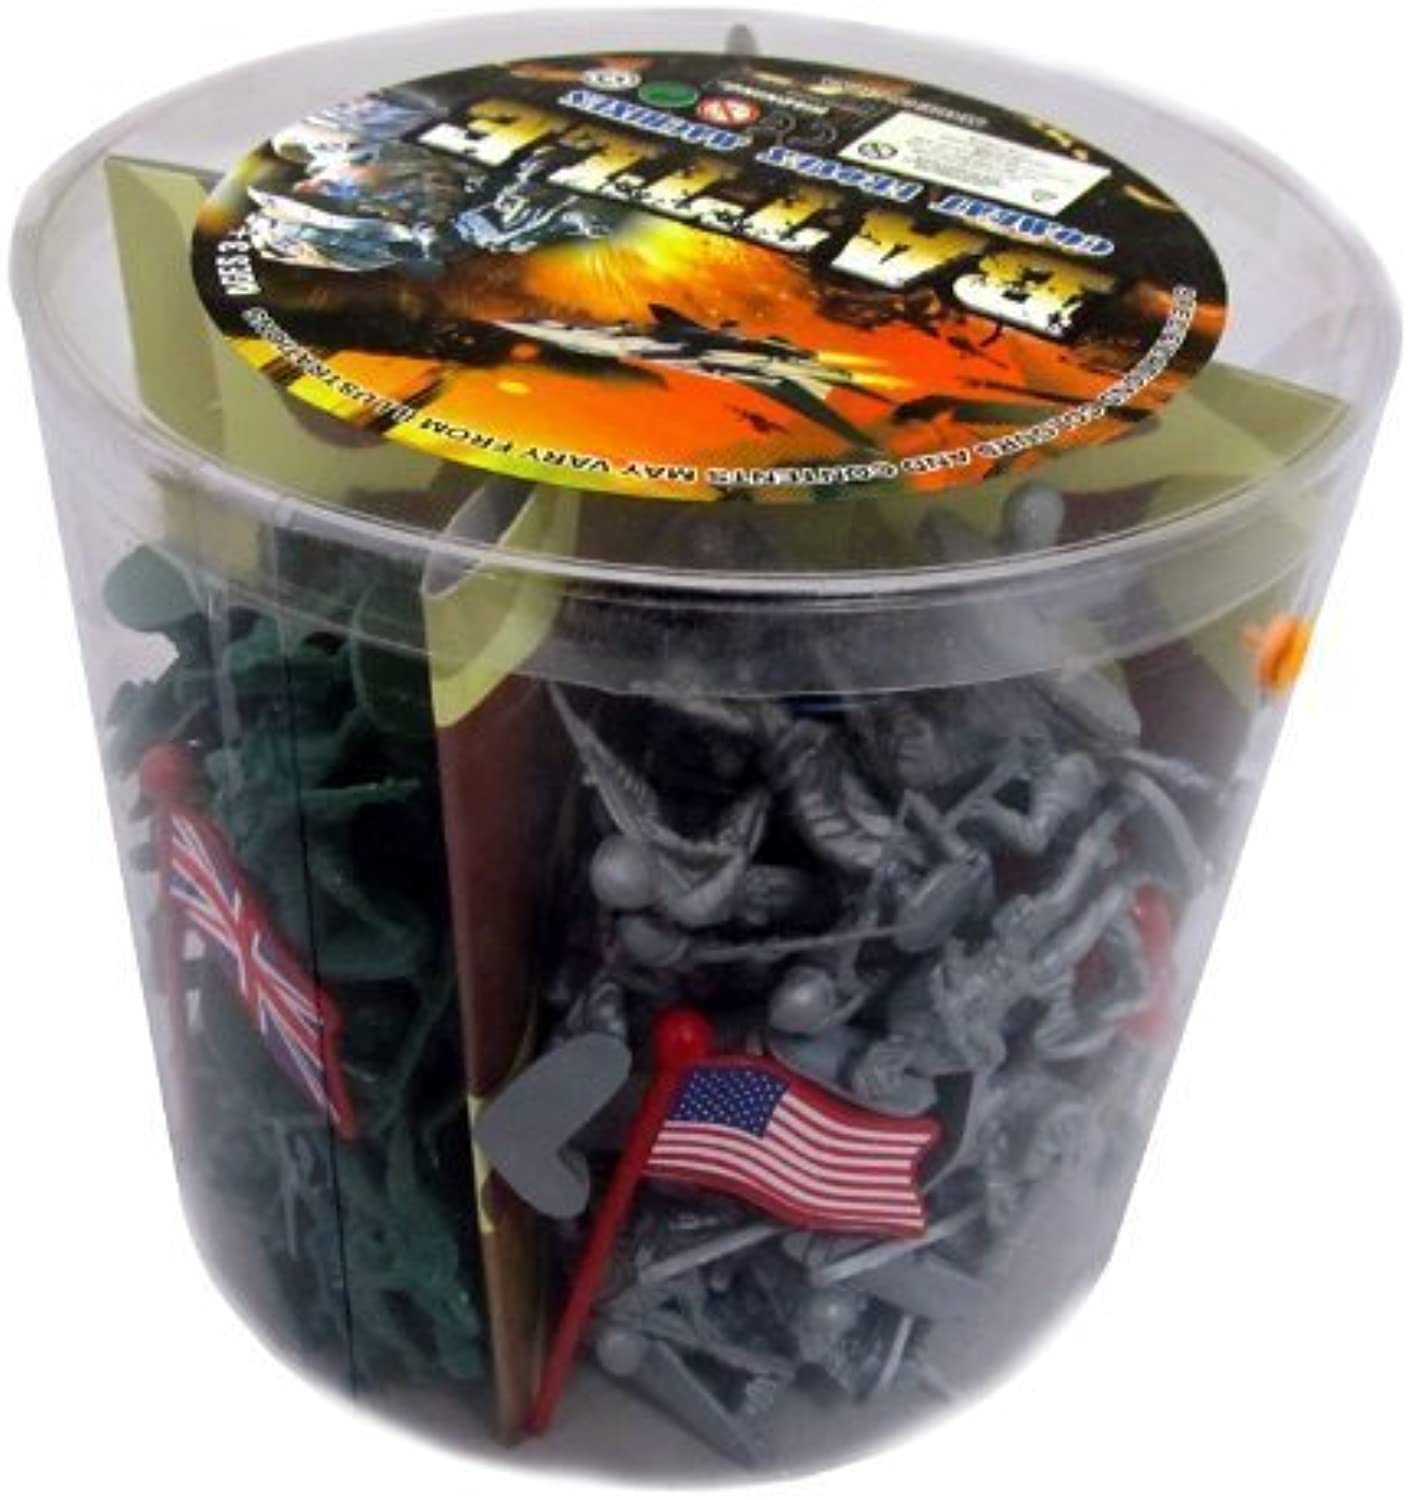 Action figures 200 Pieces Army Men Toy Soldiers (World War 2) by Liberty Imports